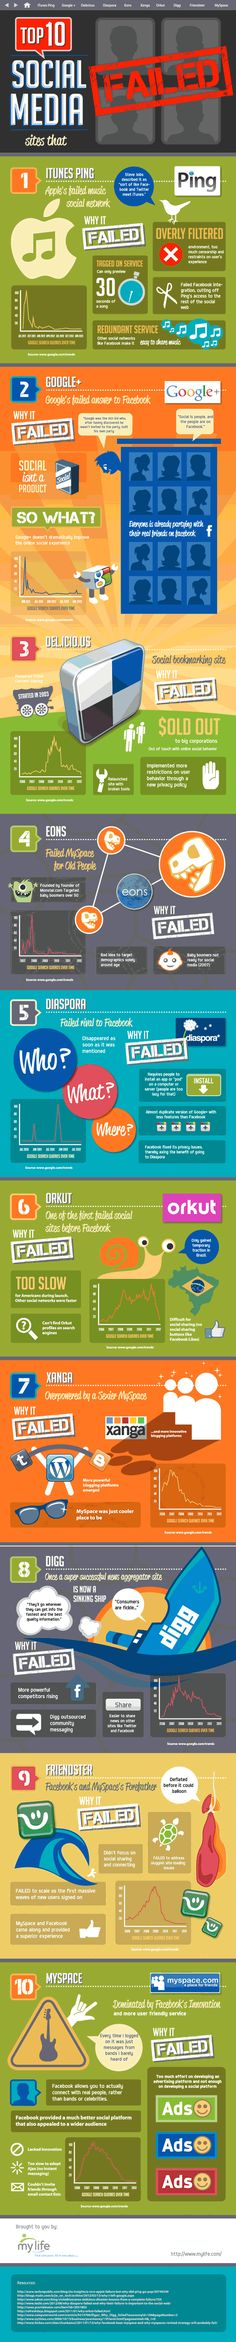 Failed Social Media Sites #socialmedia #infografía